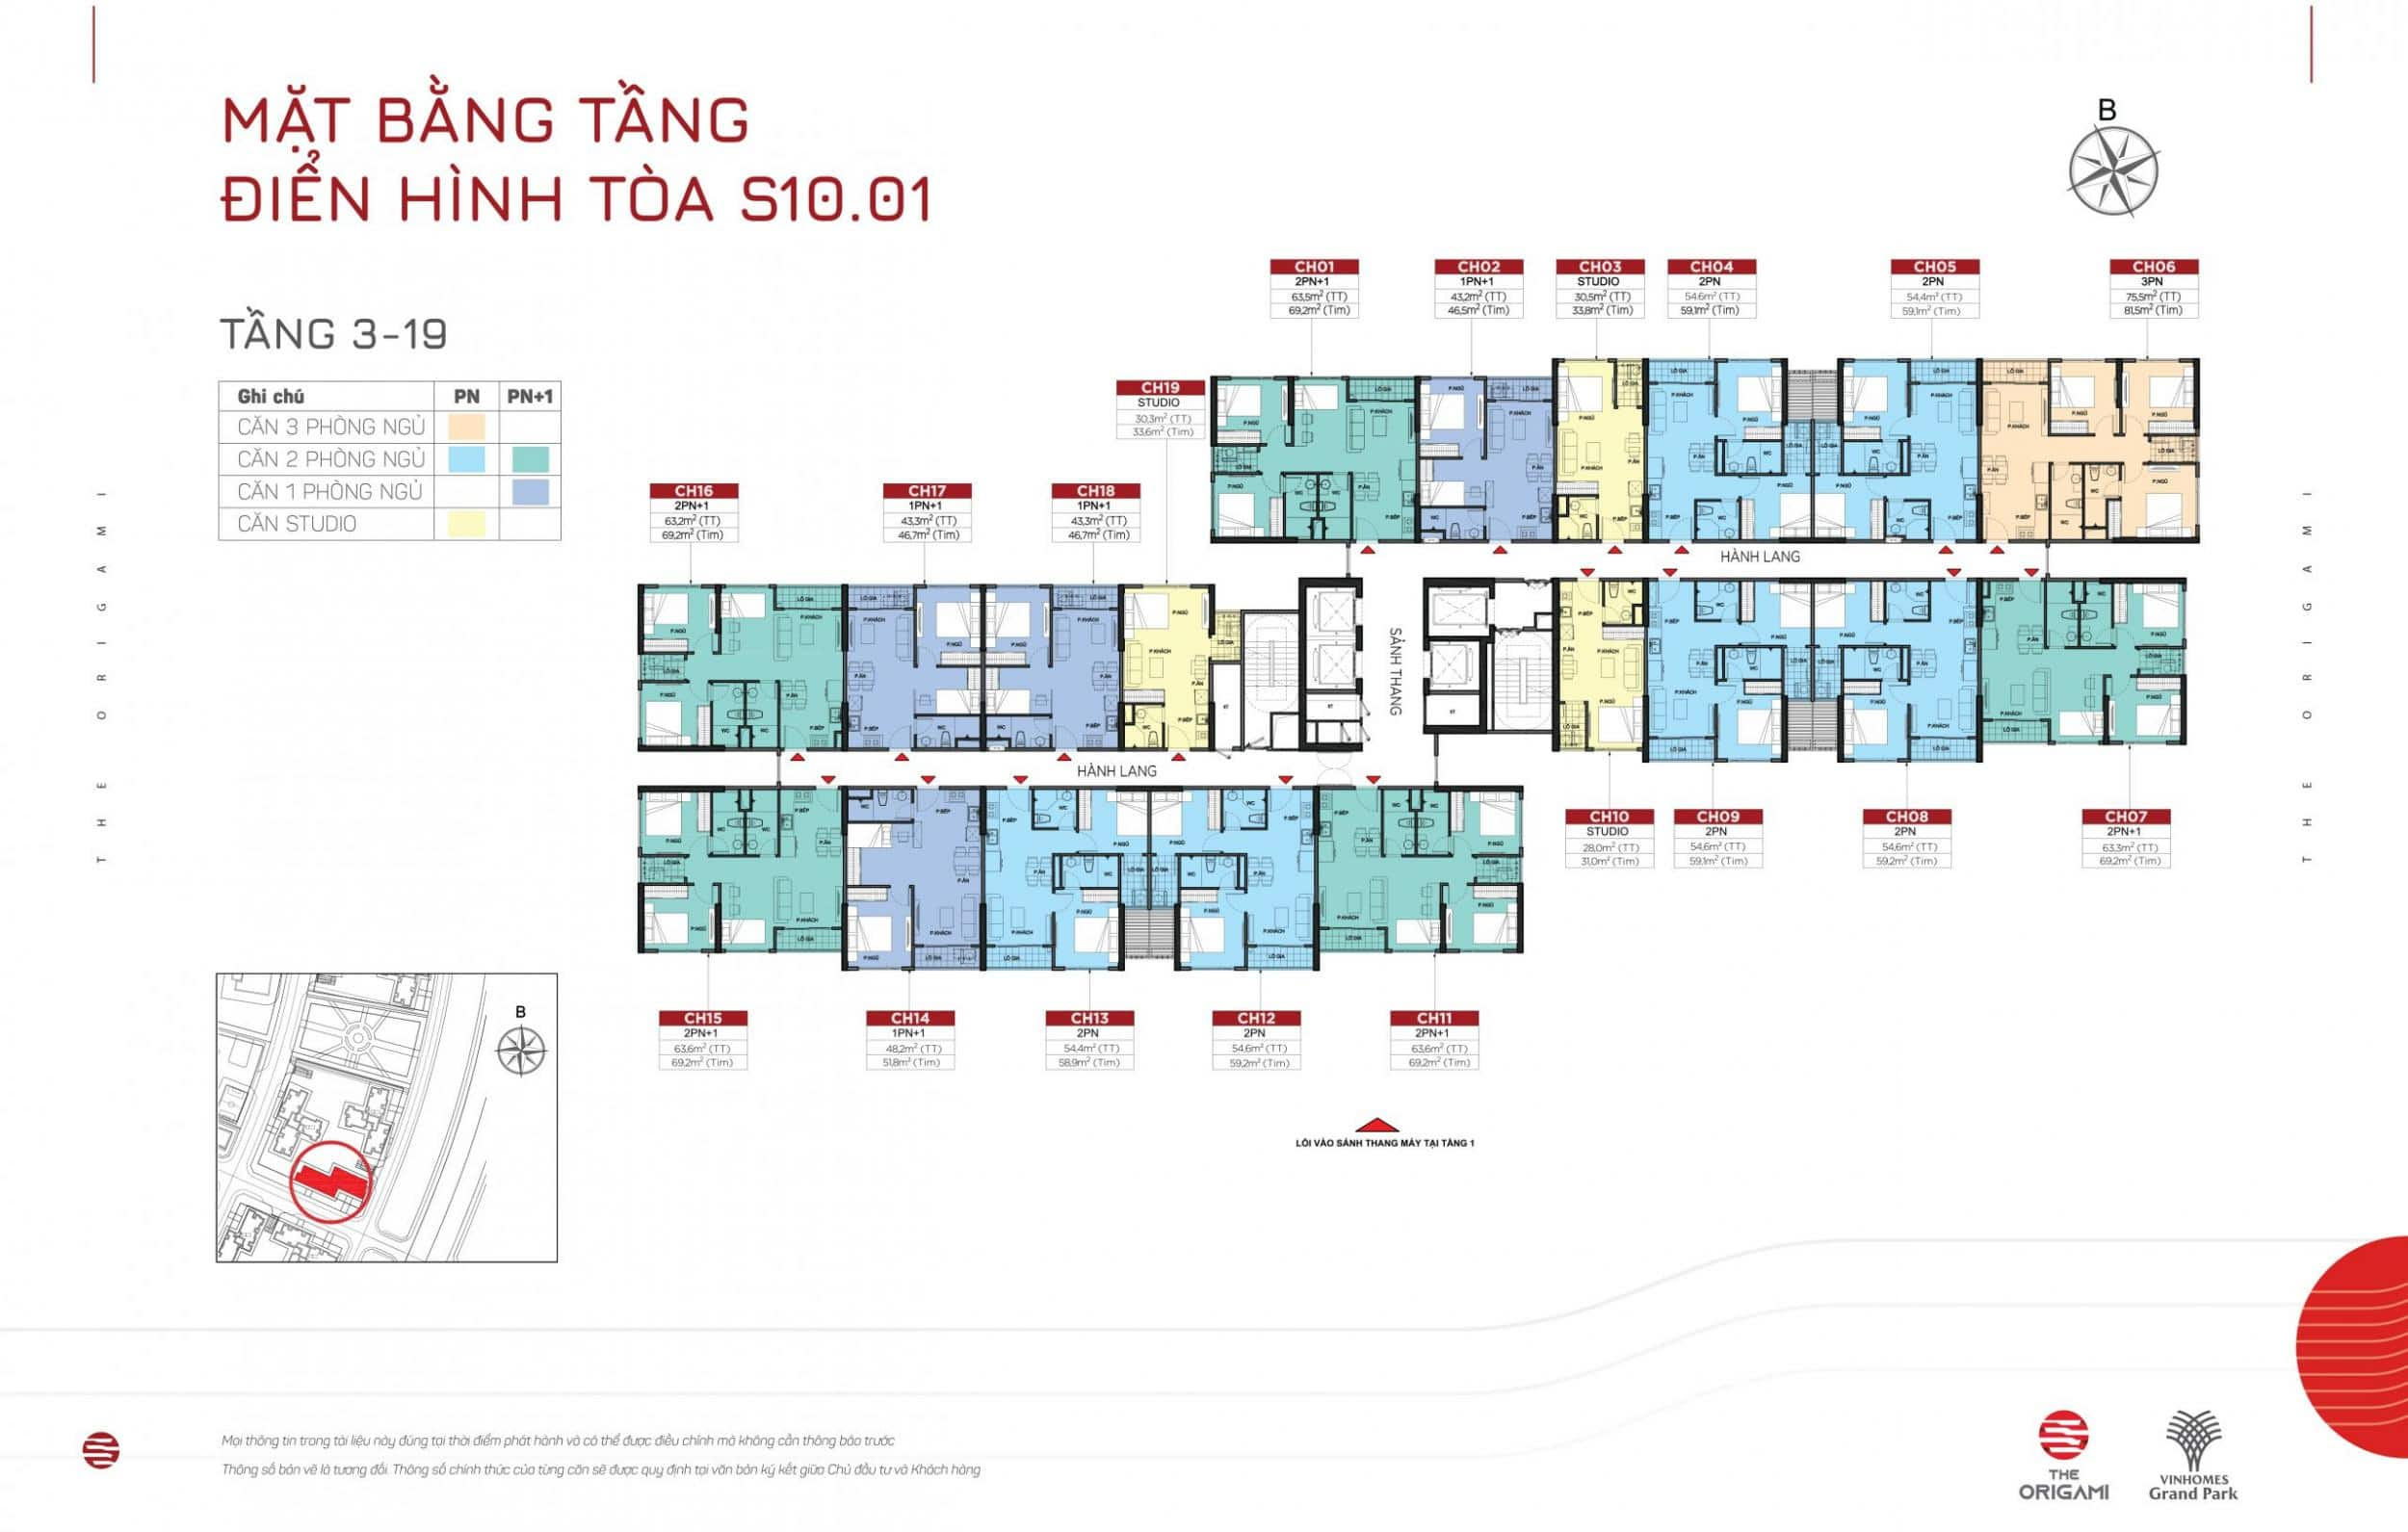 Mặt bằng S10.01 The Origami Vinhomes Grand Park - tầng 3-19